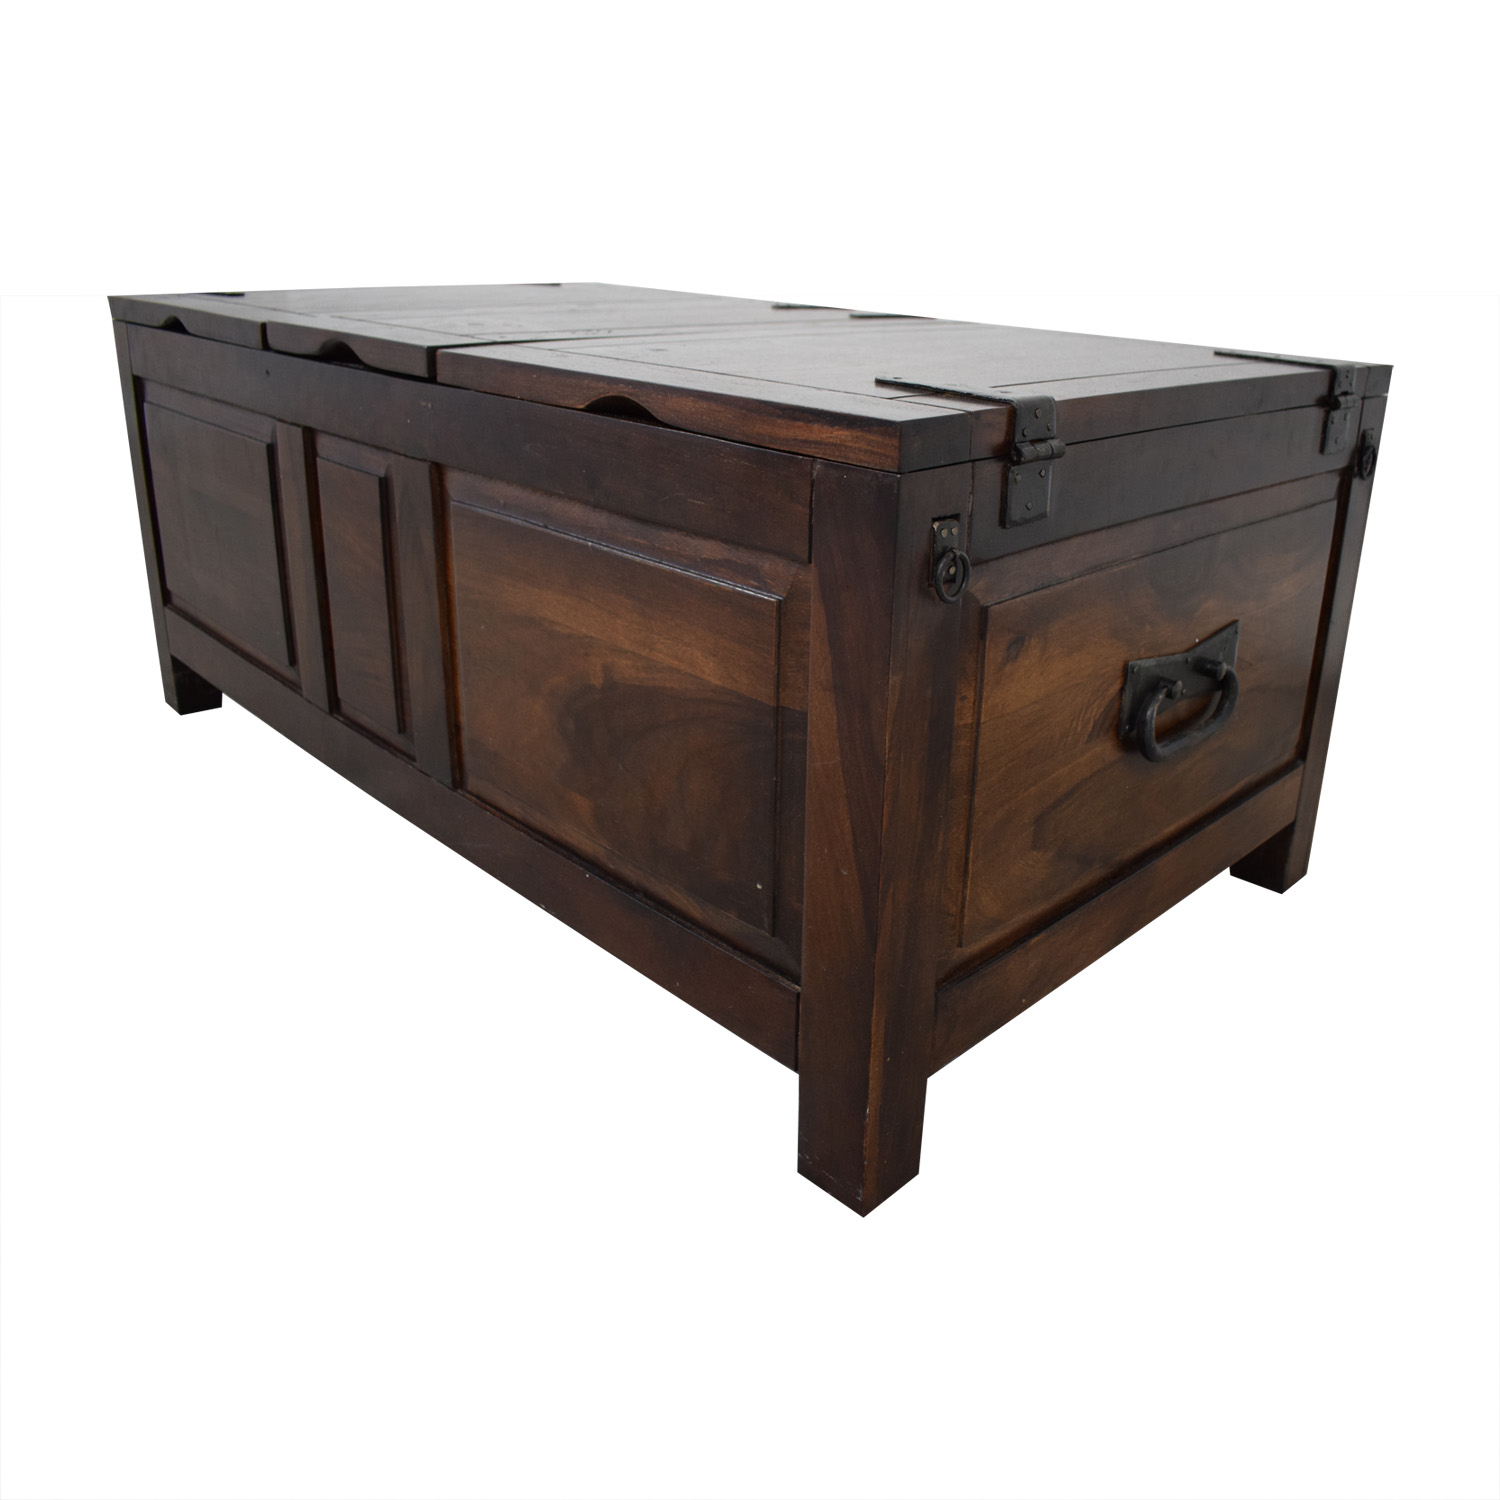 Crate & Barrel Crate & Barrel Coffee Table with Storage Coffee Tables